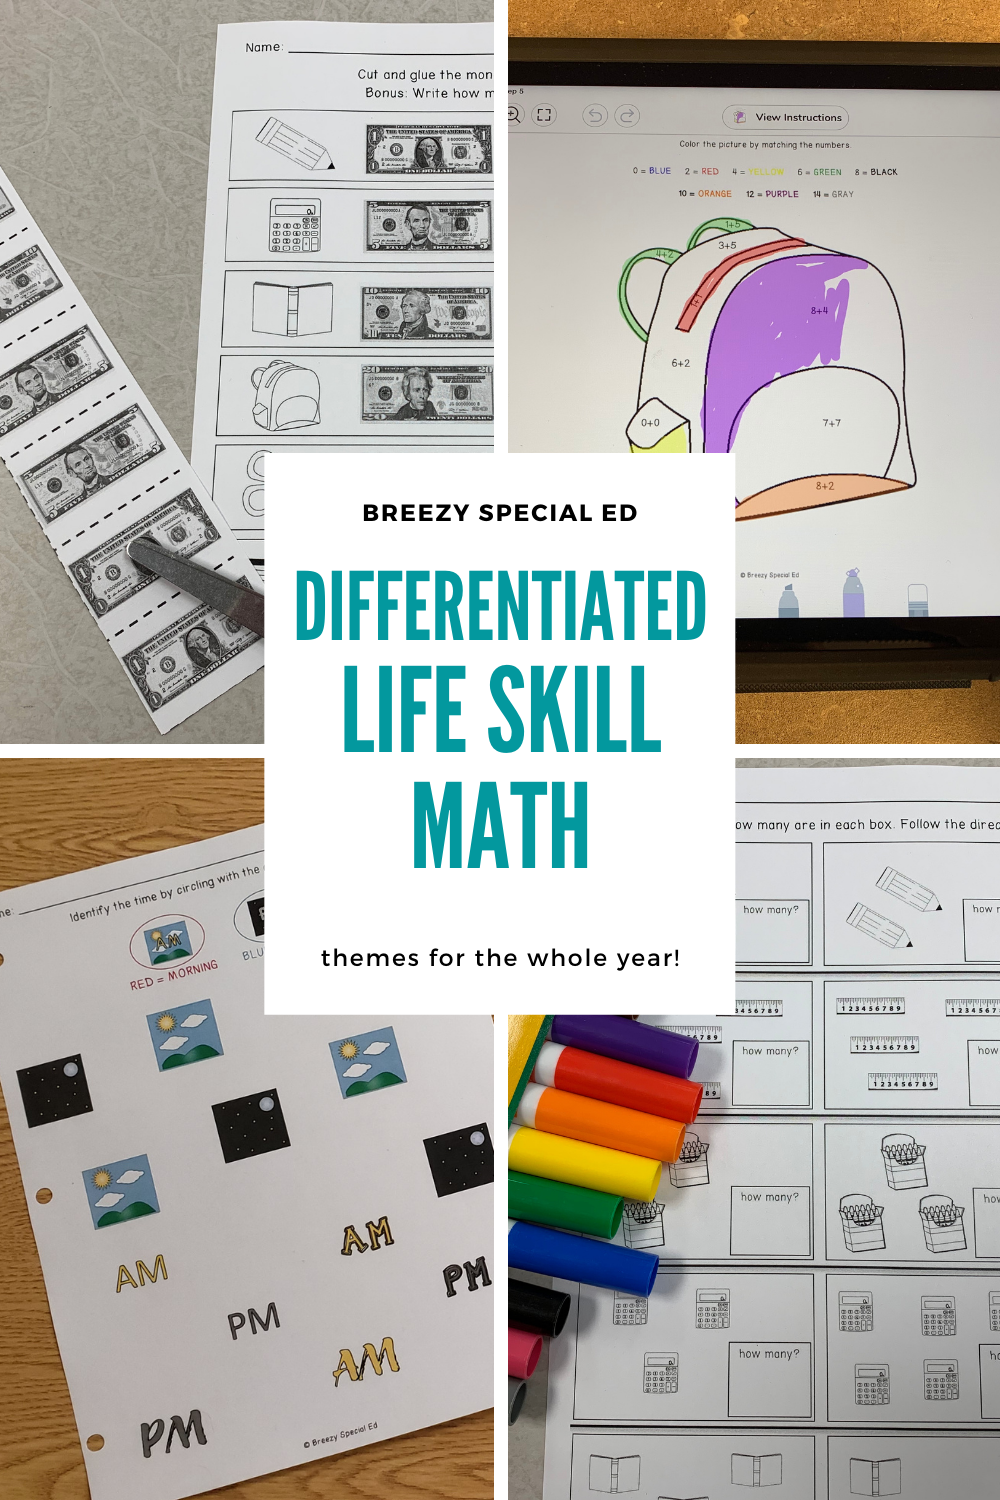 Differentiated Life Skill Math Worksheets For Special Education Life Skills Classroom Teaching Life Skills Life Skills Special Education [ 1500 x 1000 Pixel ]